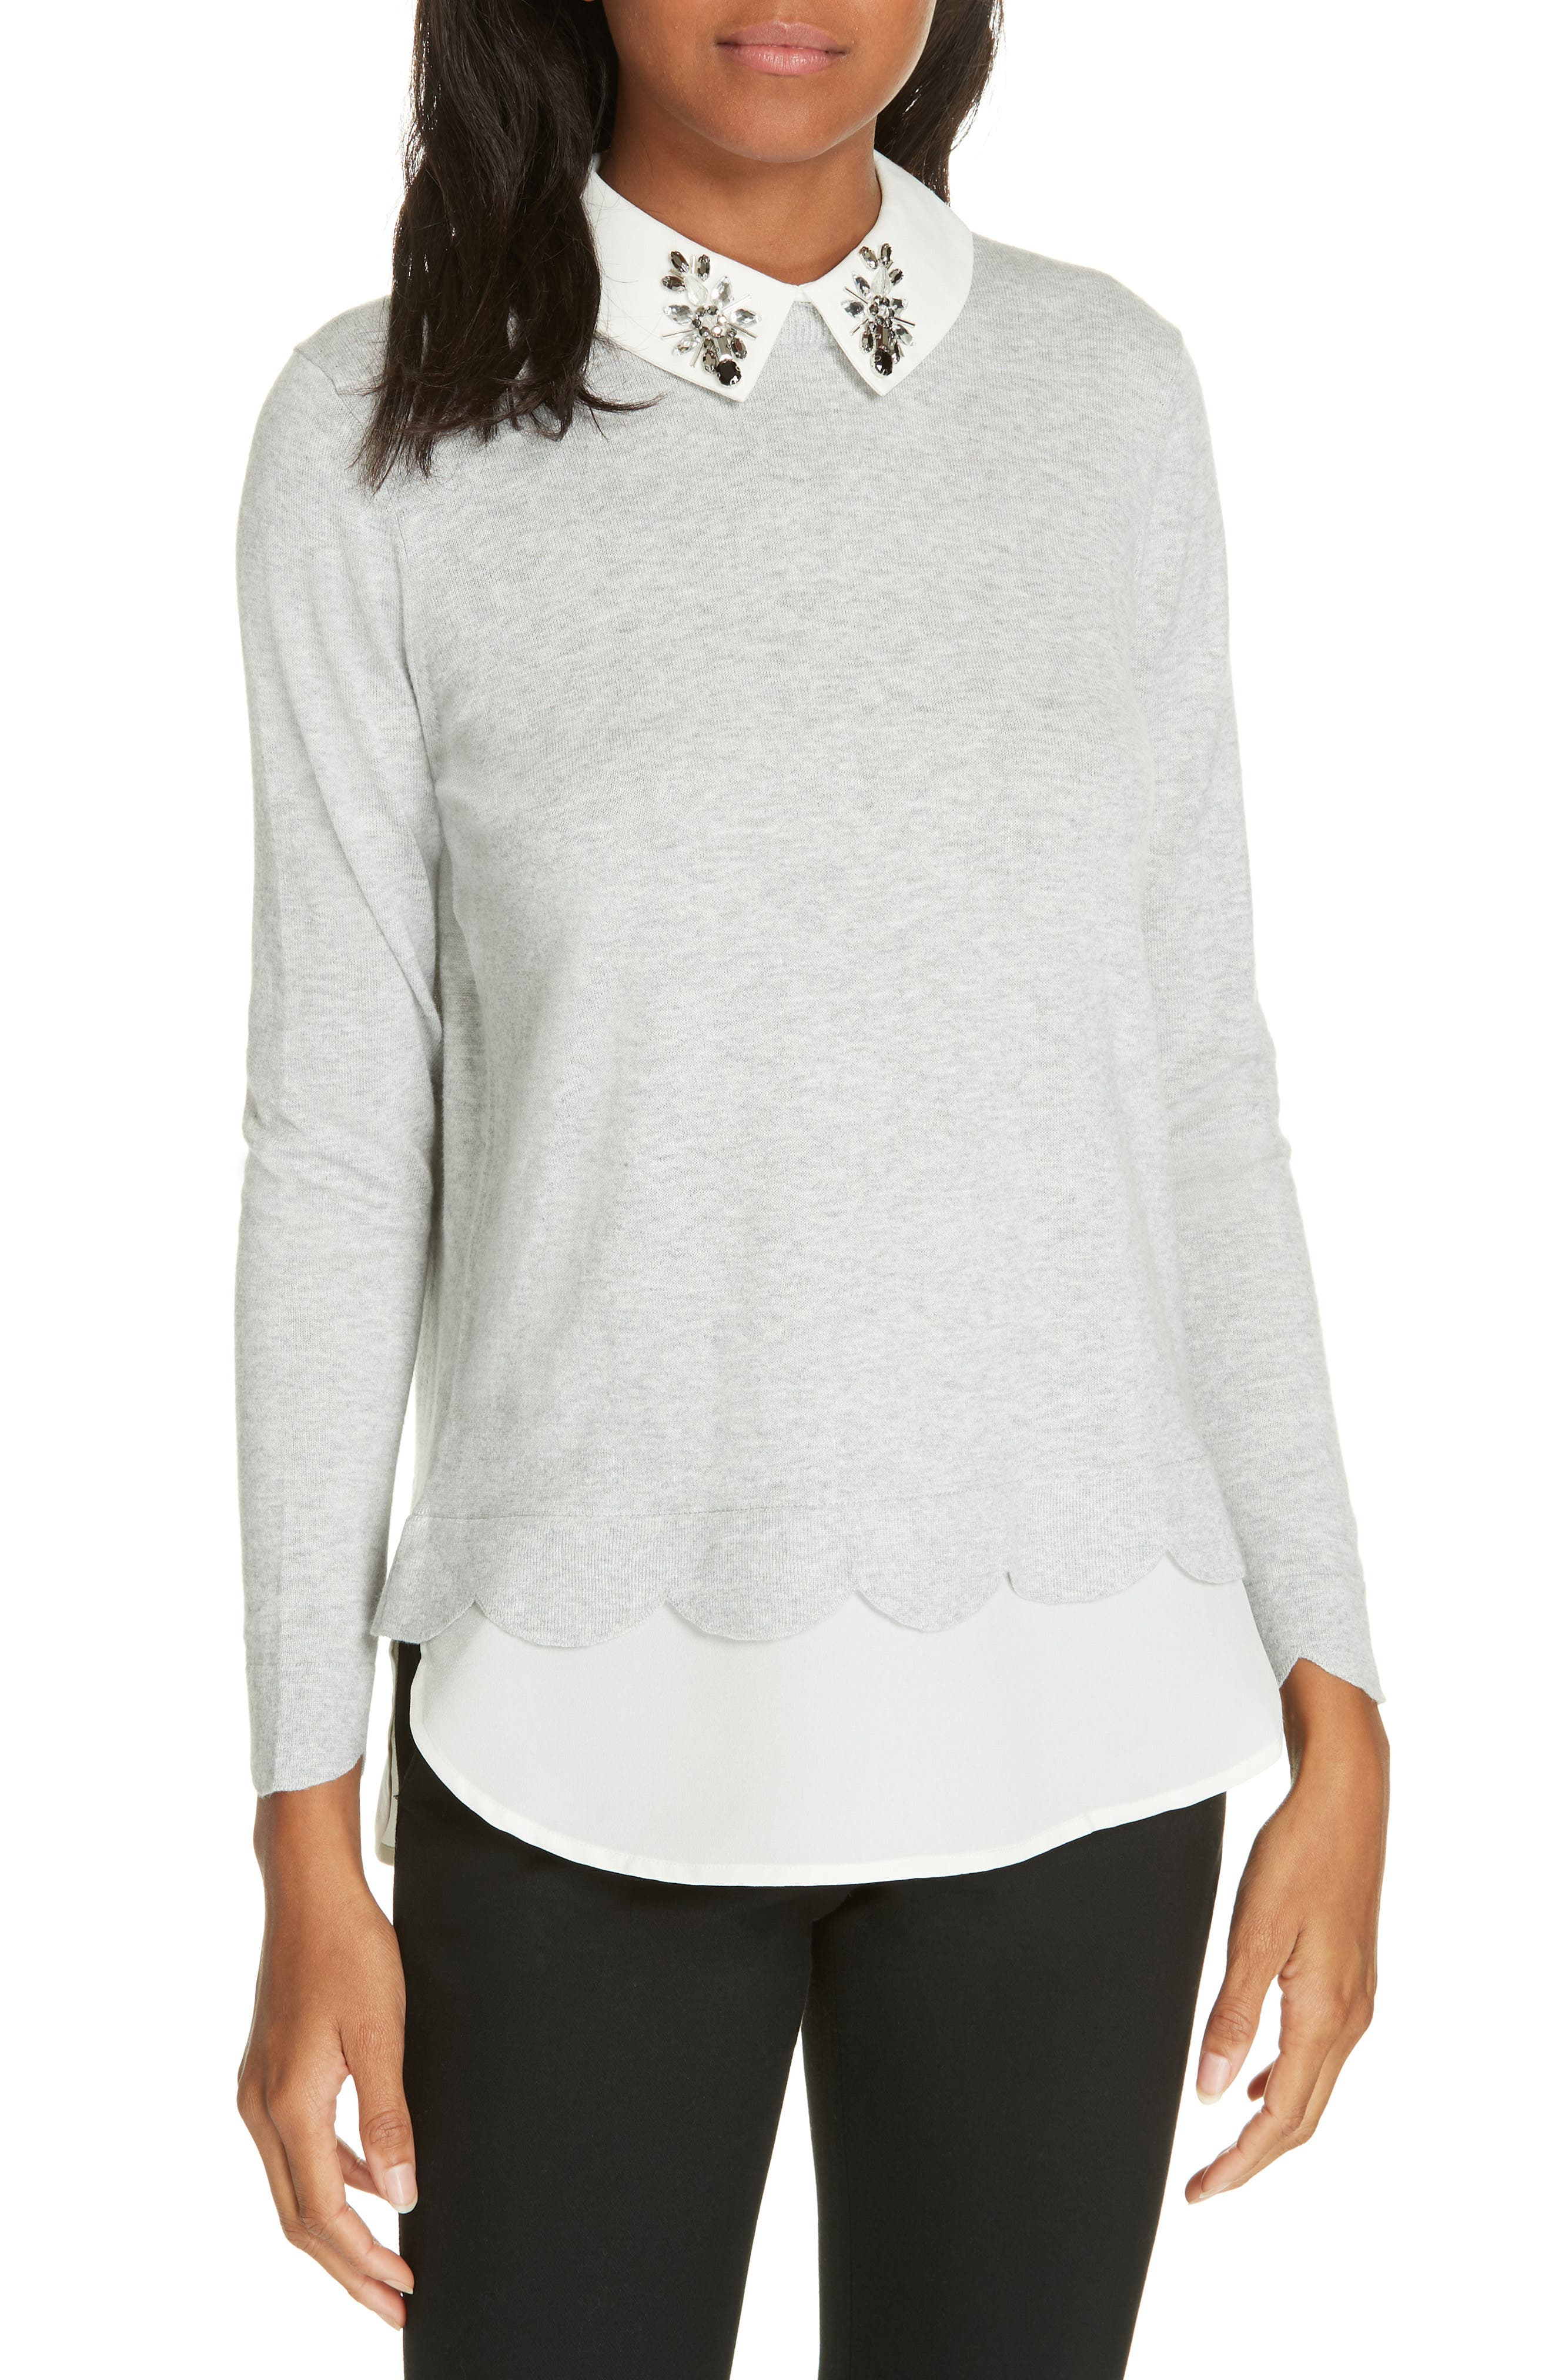 Suzaine Layered Sweater,                             Main thumbnail 1, color,                             GREY